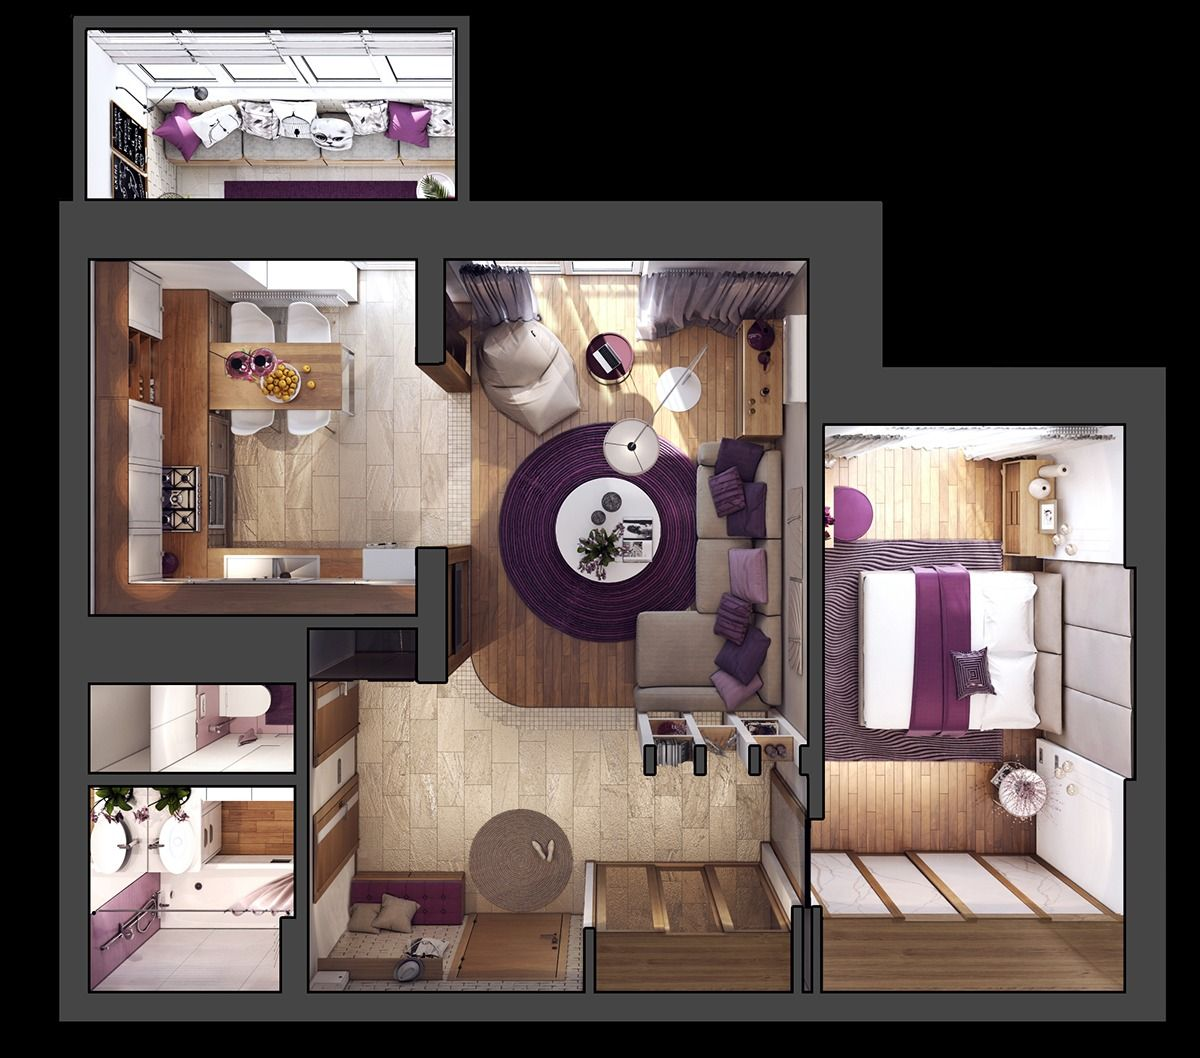 3 One Bedroom Apartments Under 750 Square Feet (70 Square